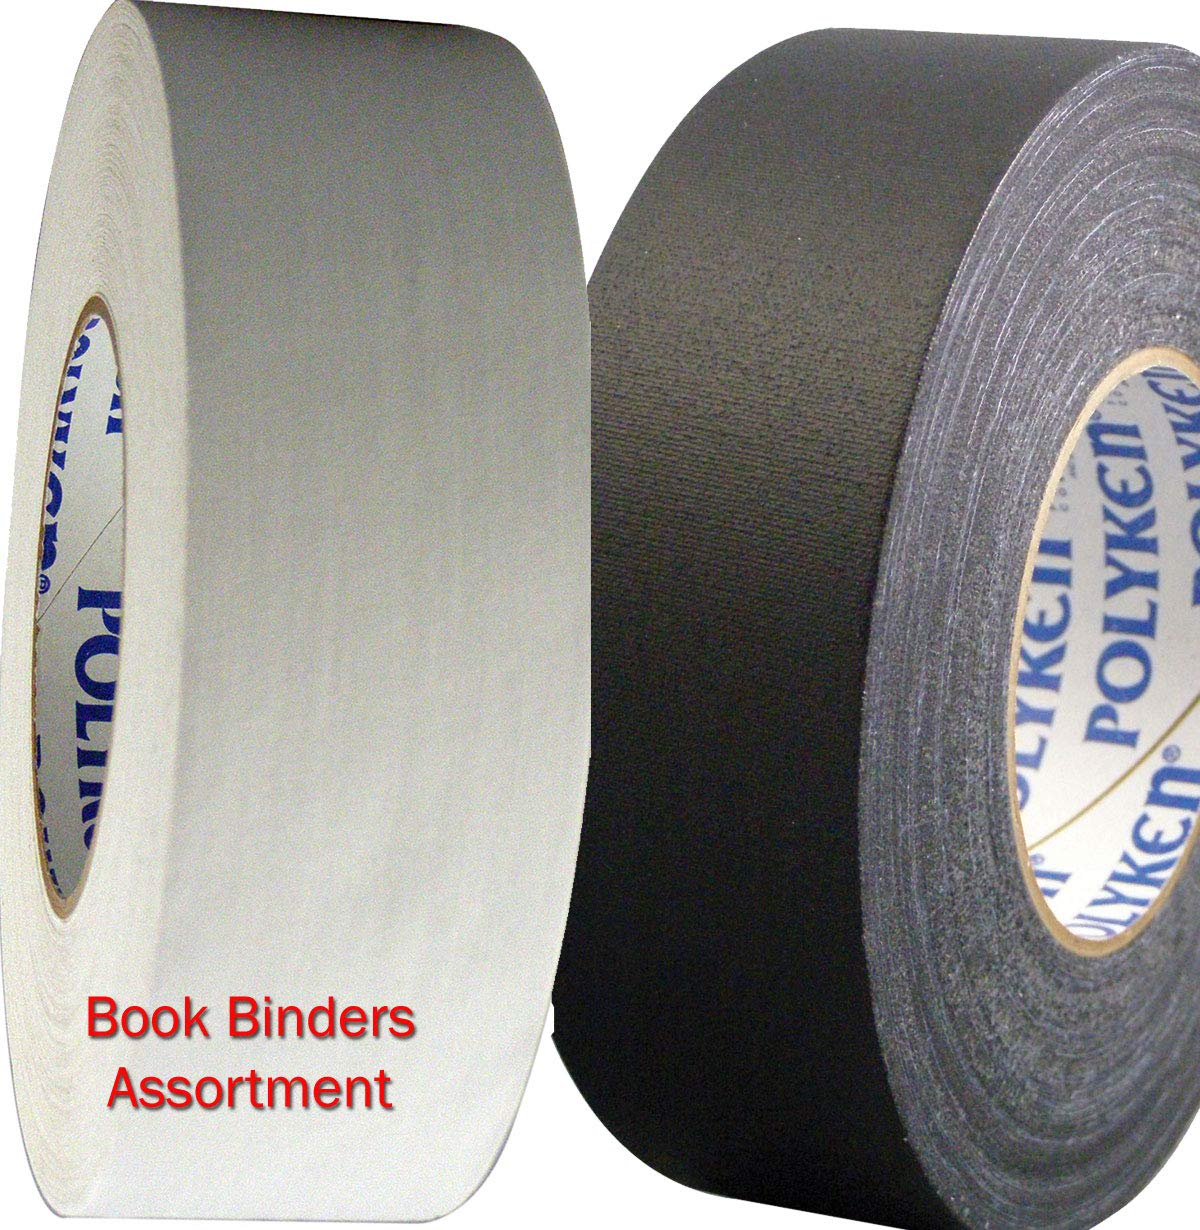 Seforim and Book Binding Specials - Polyken 4 Rolls Total of Black and White 2-inch Wide Book Binding Tape by Polyken